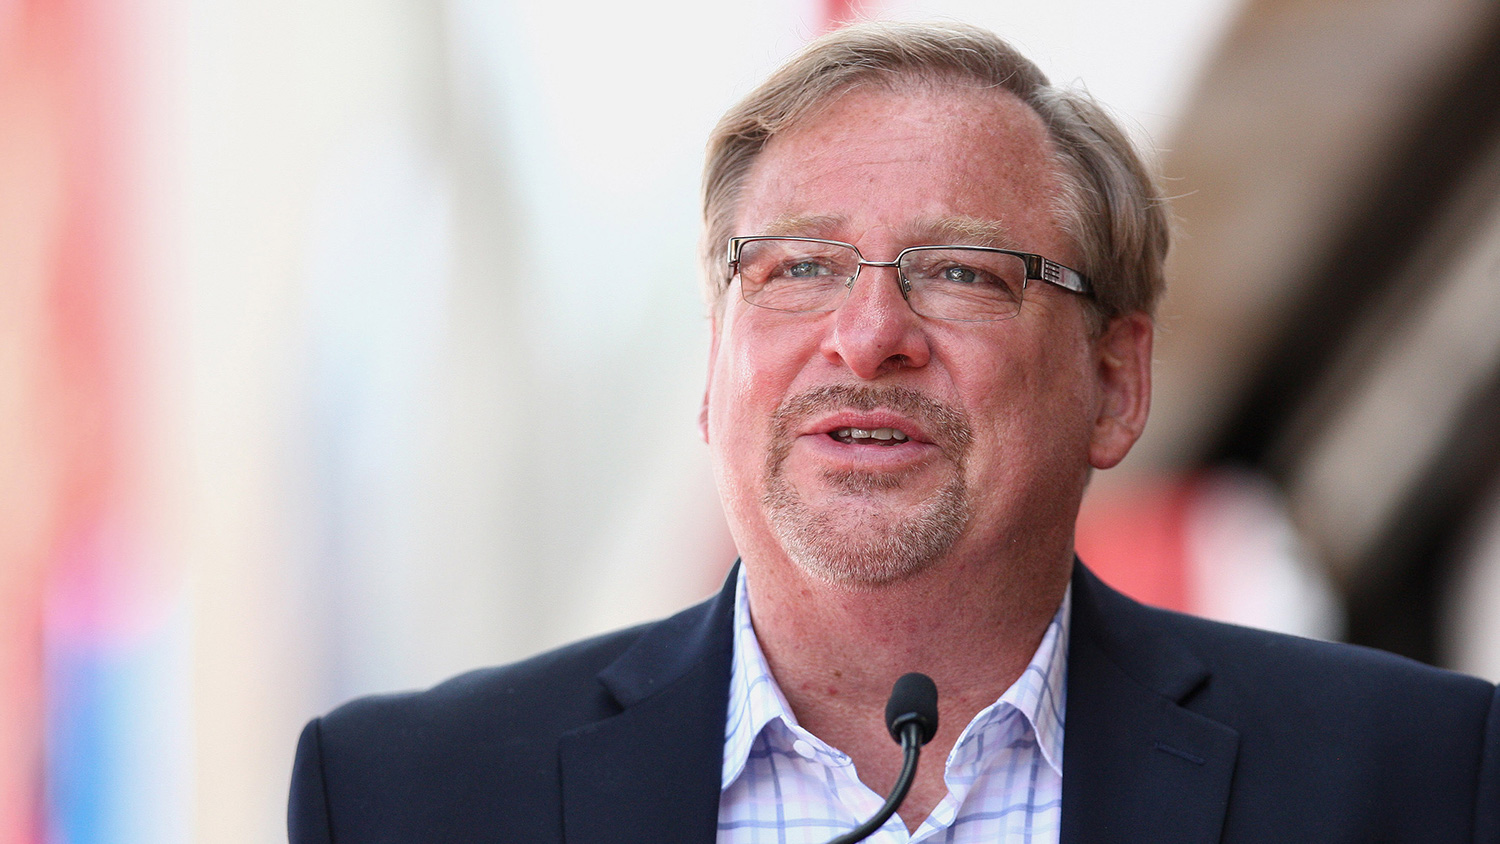 Dr. Rick Warren - Founder and Pastor of Saddleback Church, Author